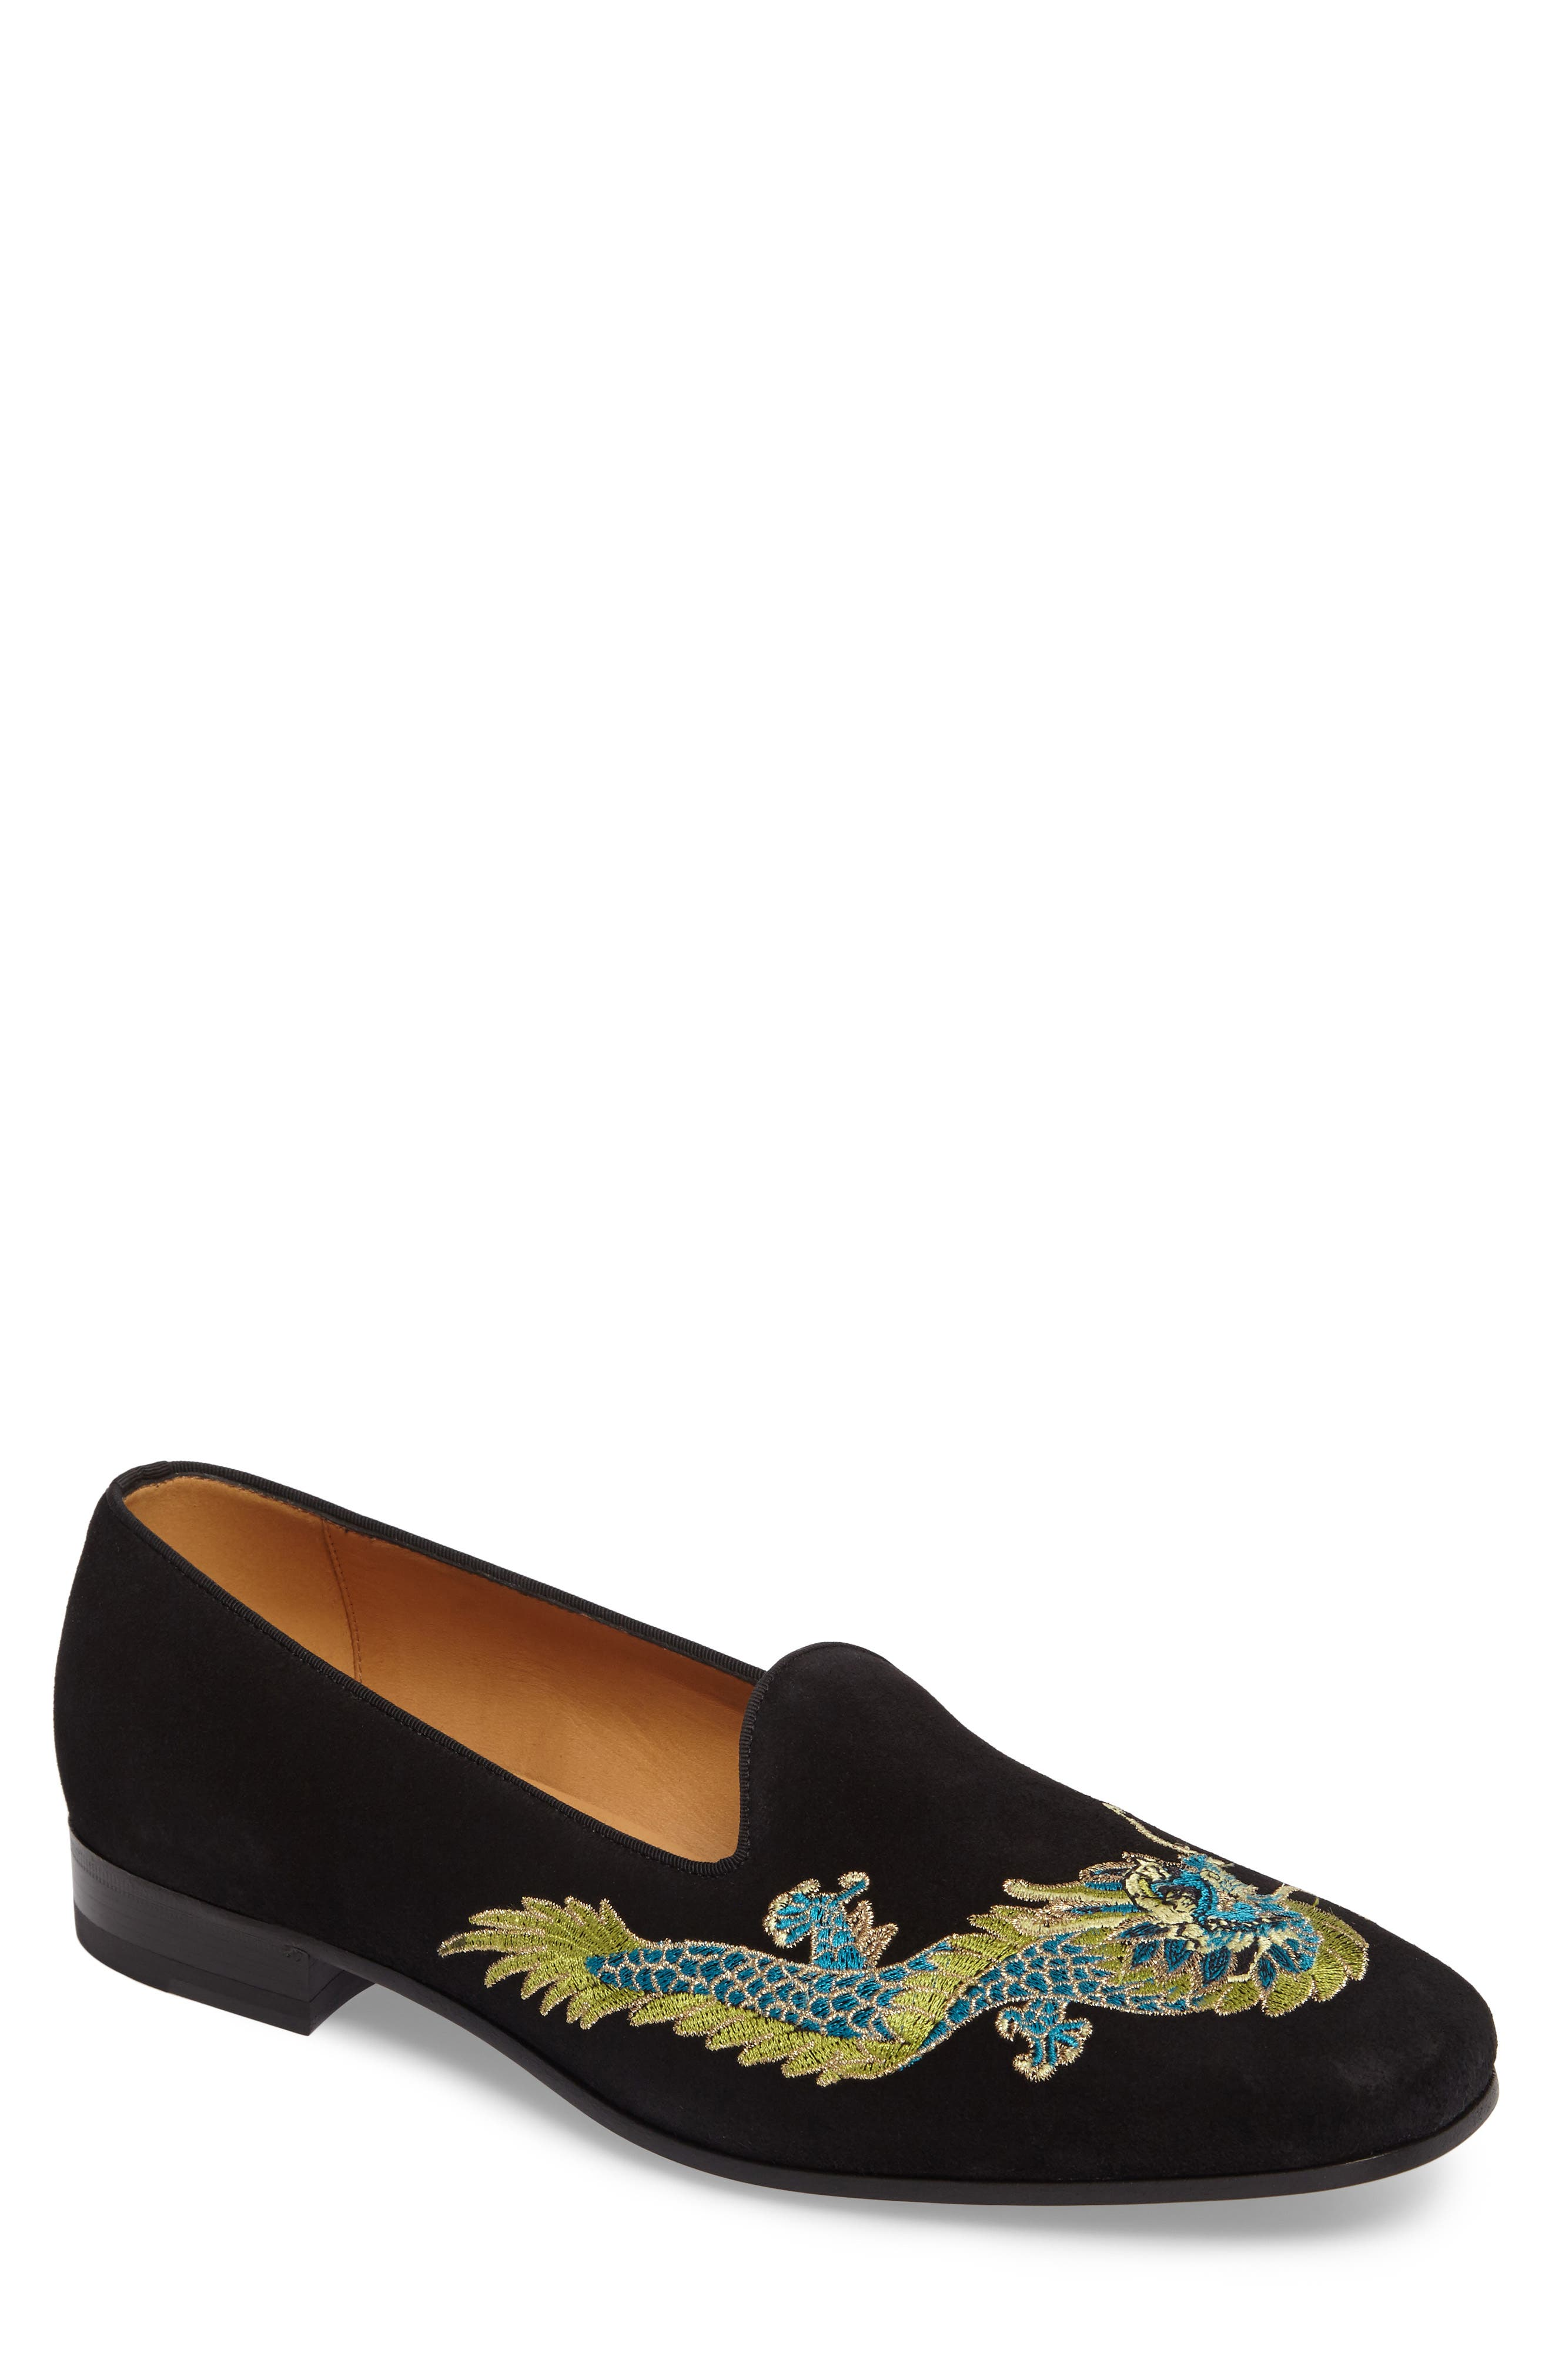 Dragon Embroidered Suede Loafer,                         Main,                         color, 001